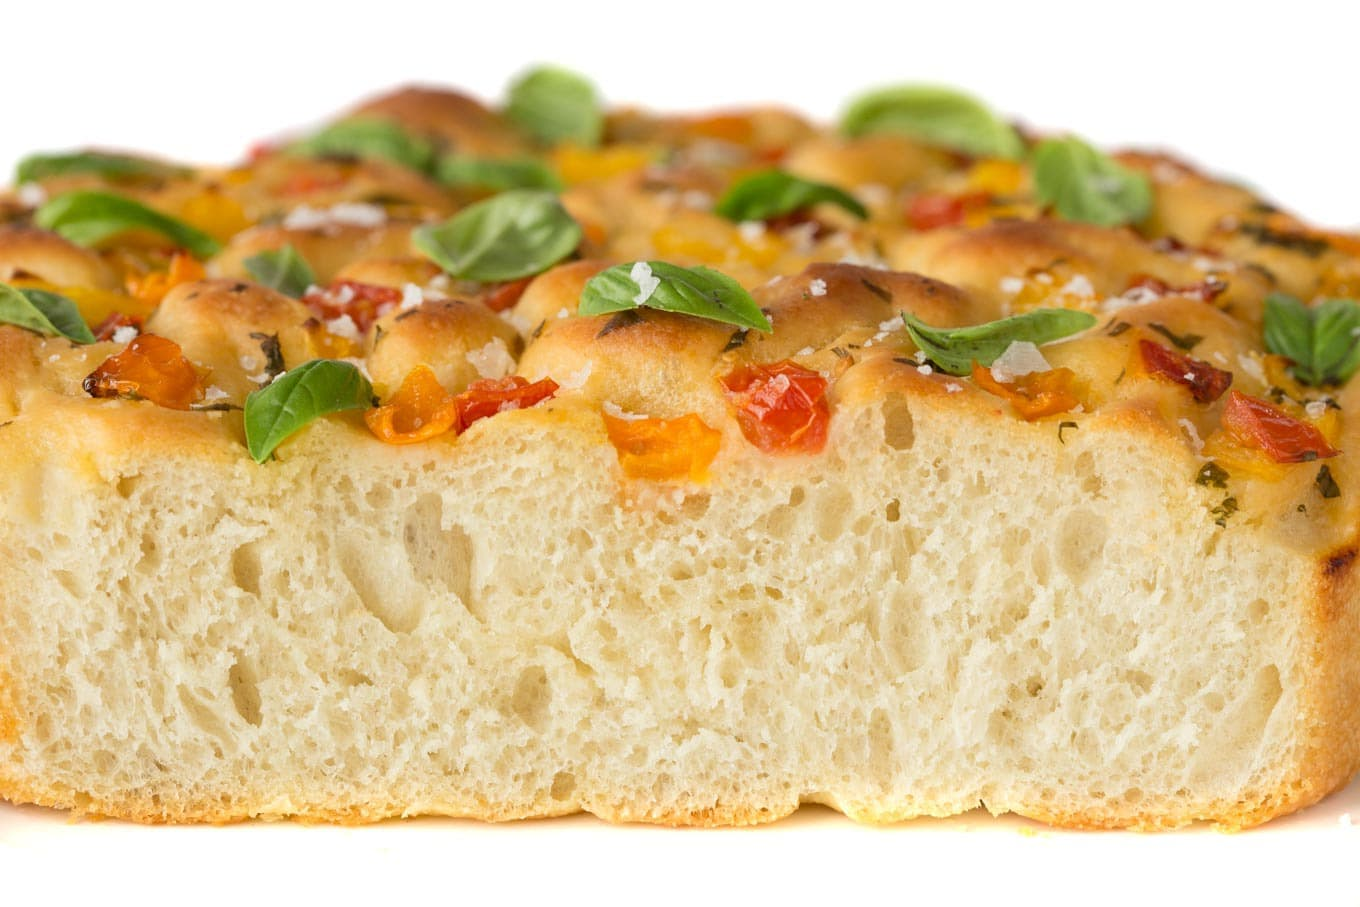 Tomato Basil Parmesan Focaccia - this Italian-inspired bread may just be one of the most delicious things you ever put in your mouth!